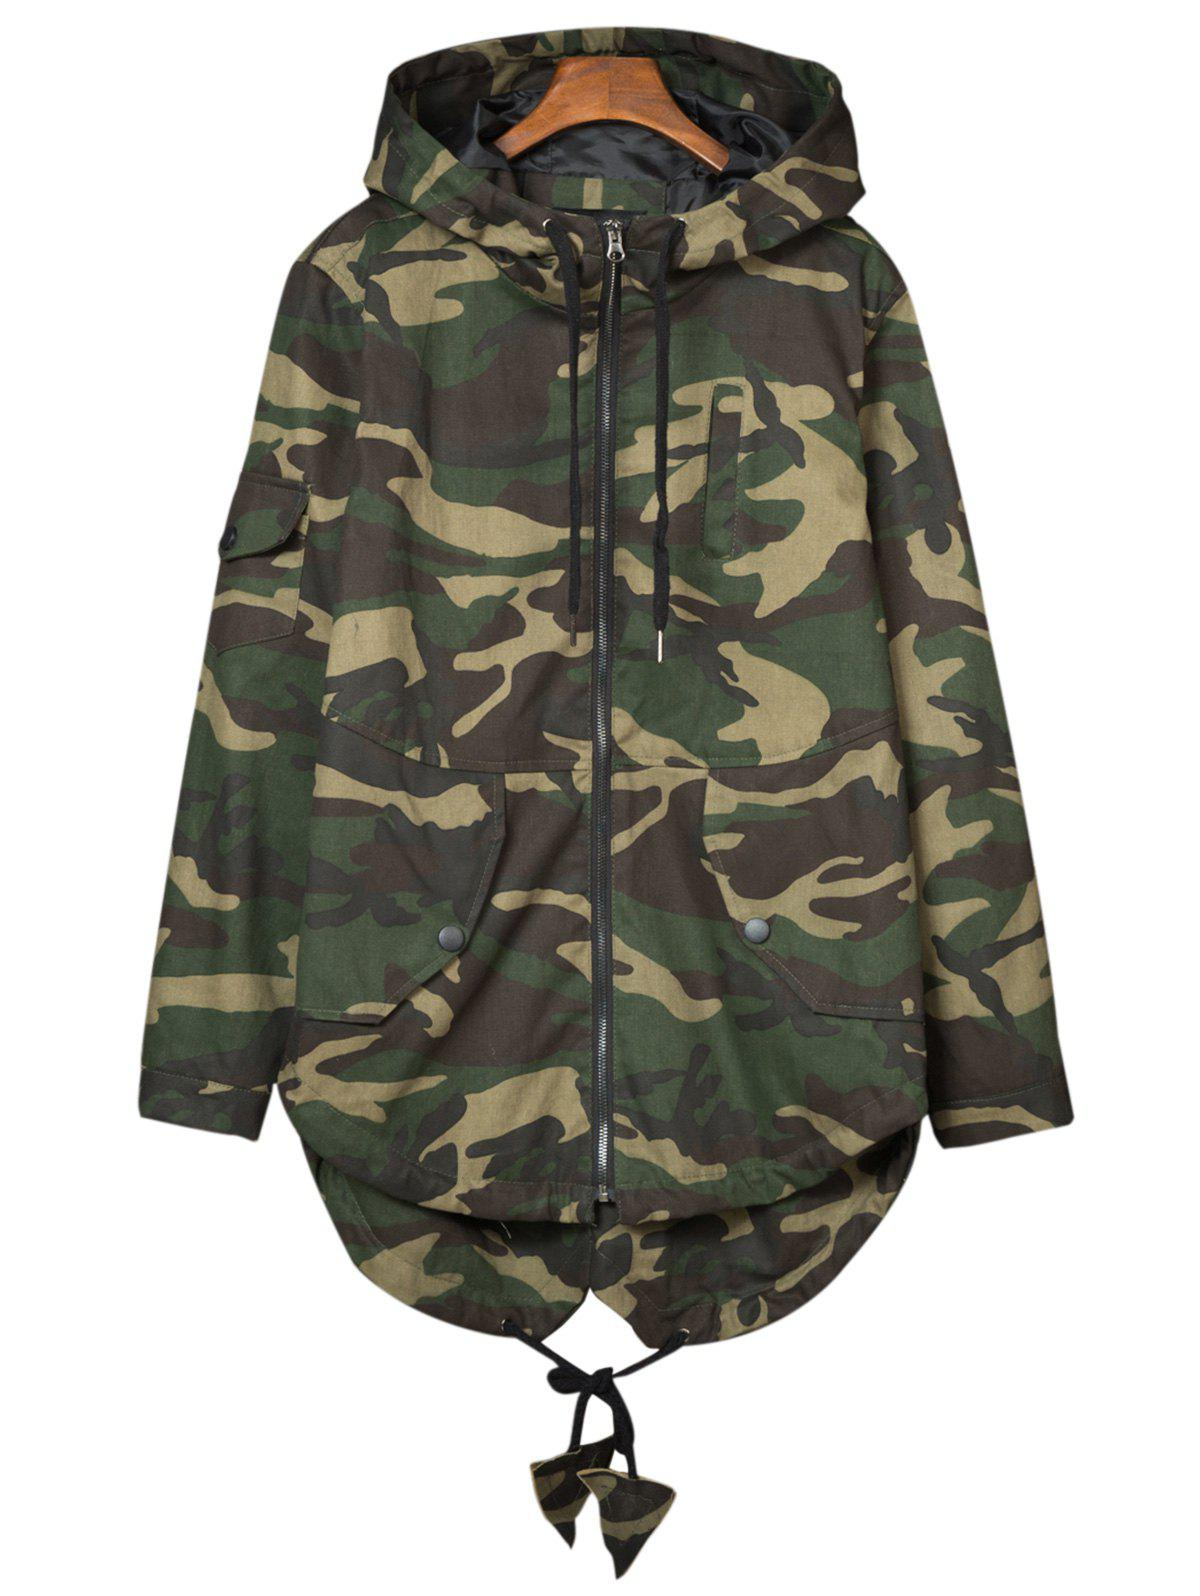 Hooded Camouflage Pockets Lightweight Coat, ARMY GREEN CAMOUFLAGE ...